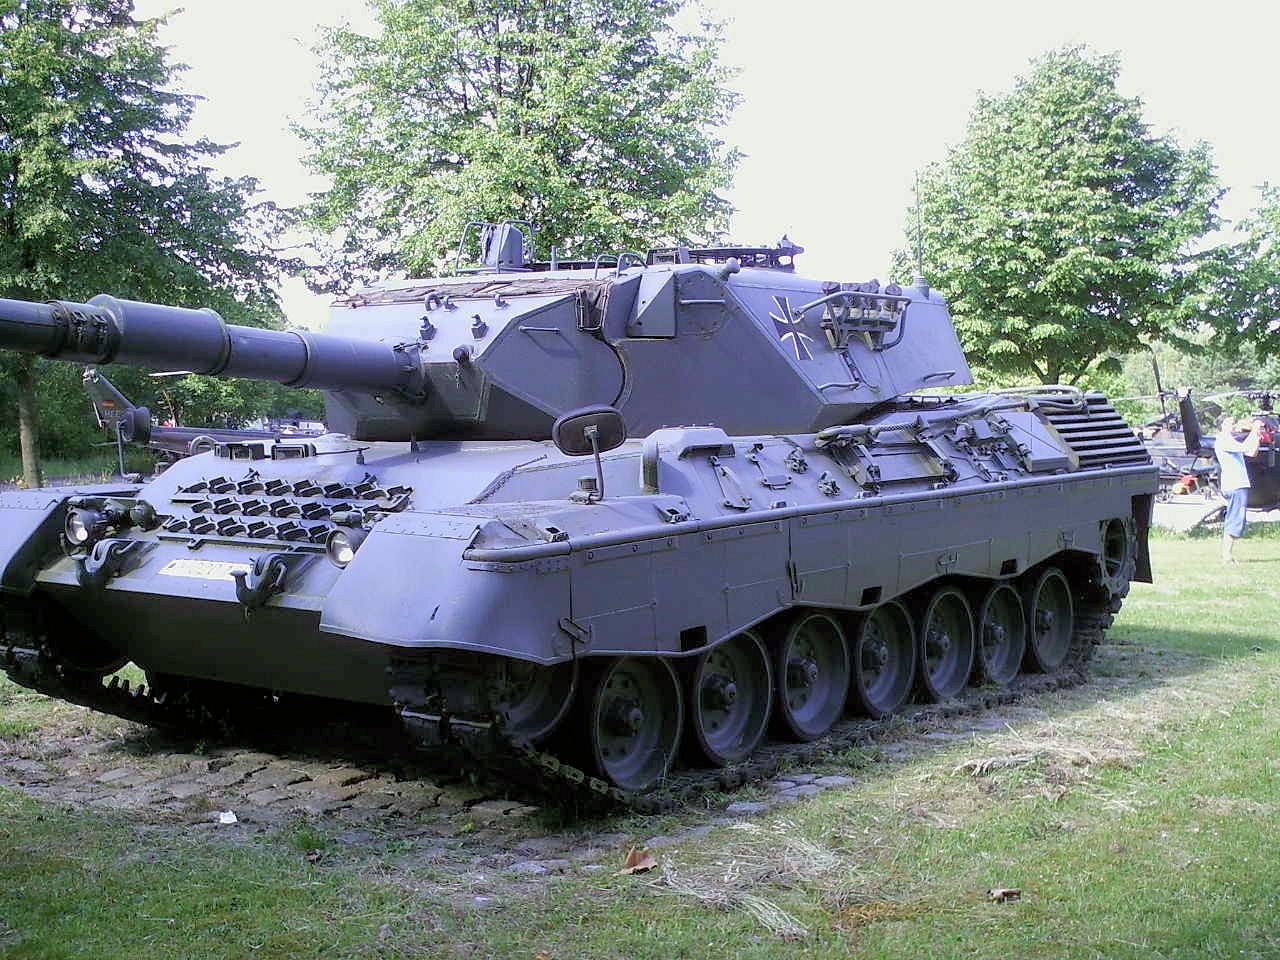 Leopard 1 | Leopard 1A4 Walk Around Page 2 | VEHICLEs